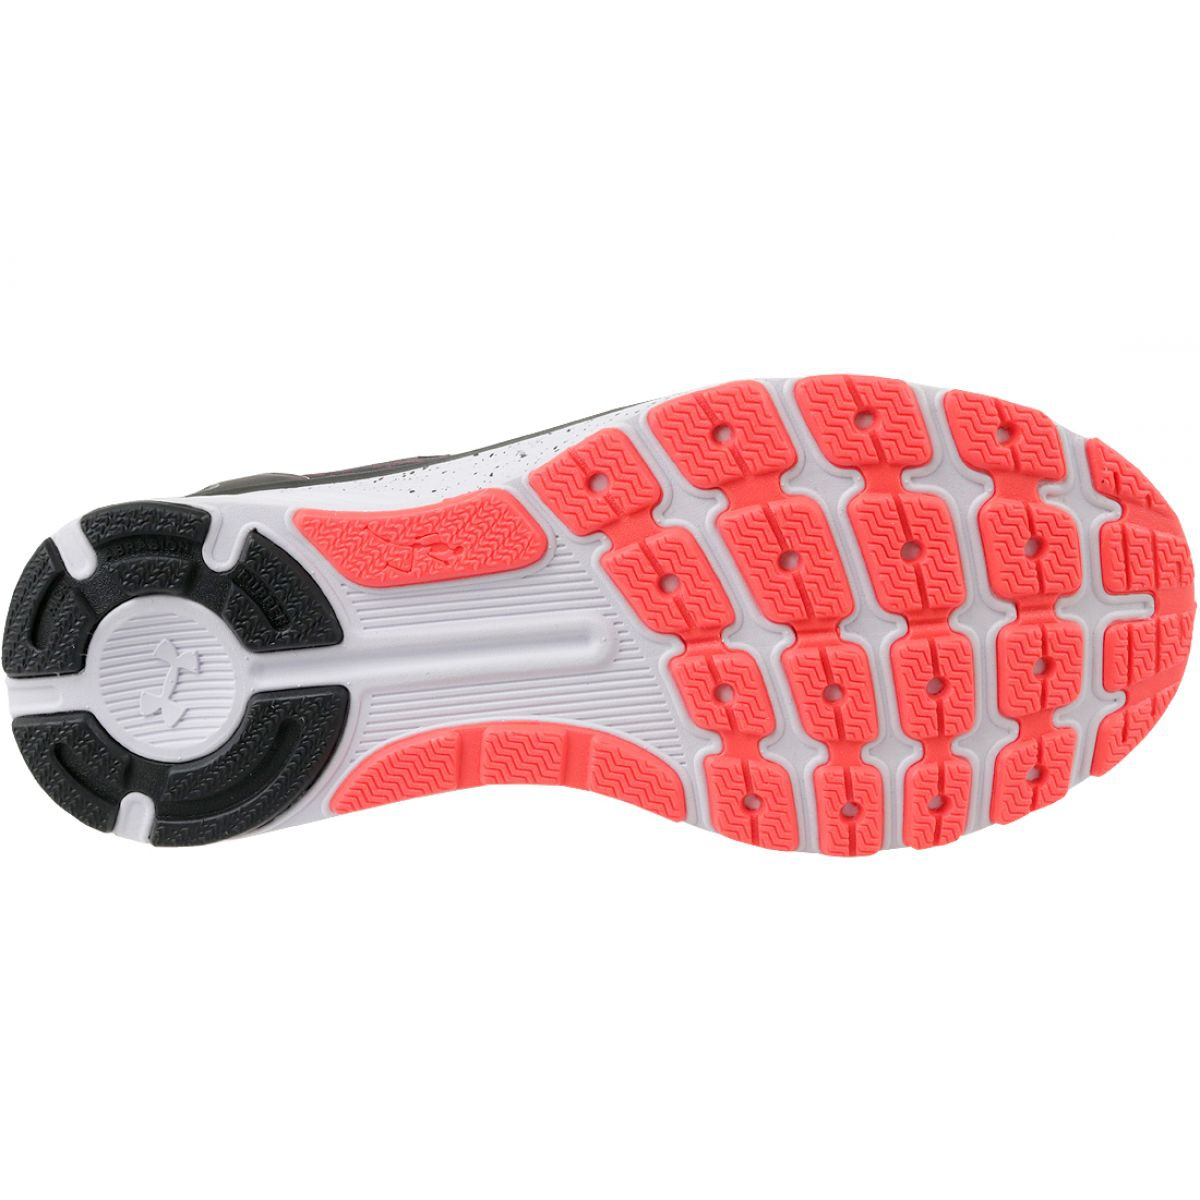 low priced 3b316 ca87d Under Armour Under Armor Charged Bandit 3 Ombre M 3020119-600 running shoes